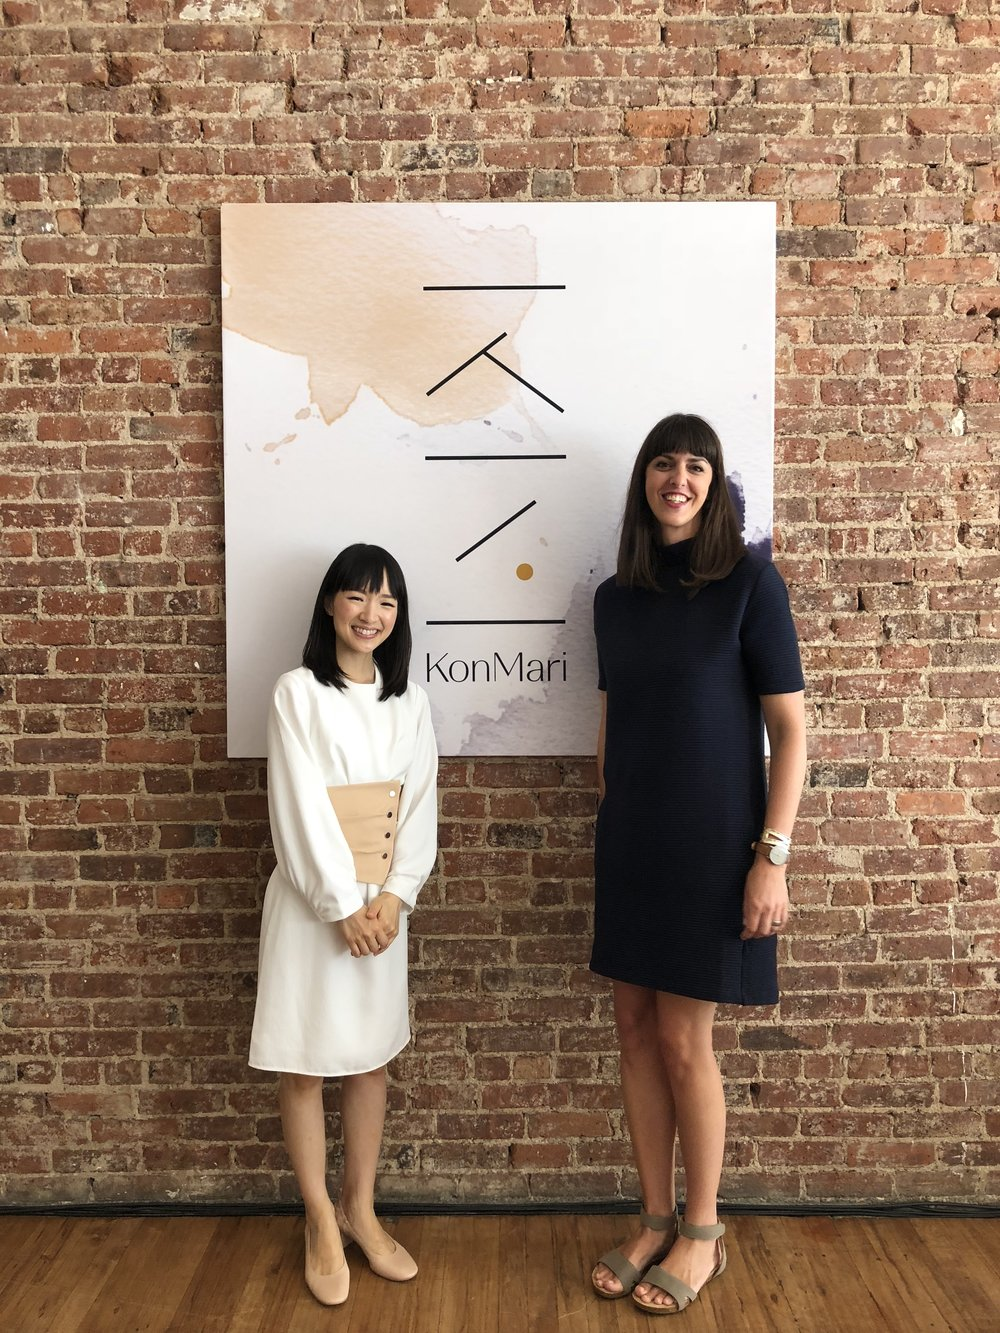 Here, Marie and I are showing off the beautiful new KonMari logo at a press event in NYC in the summer of 2018. This photo was taken nearly two years after I embarked on my journey as a member of the first class of trainees, joining a group of amazing women around the world (and a few men!) who are helping people to #choosejoy.